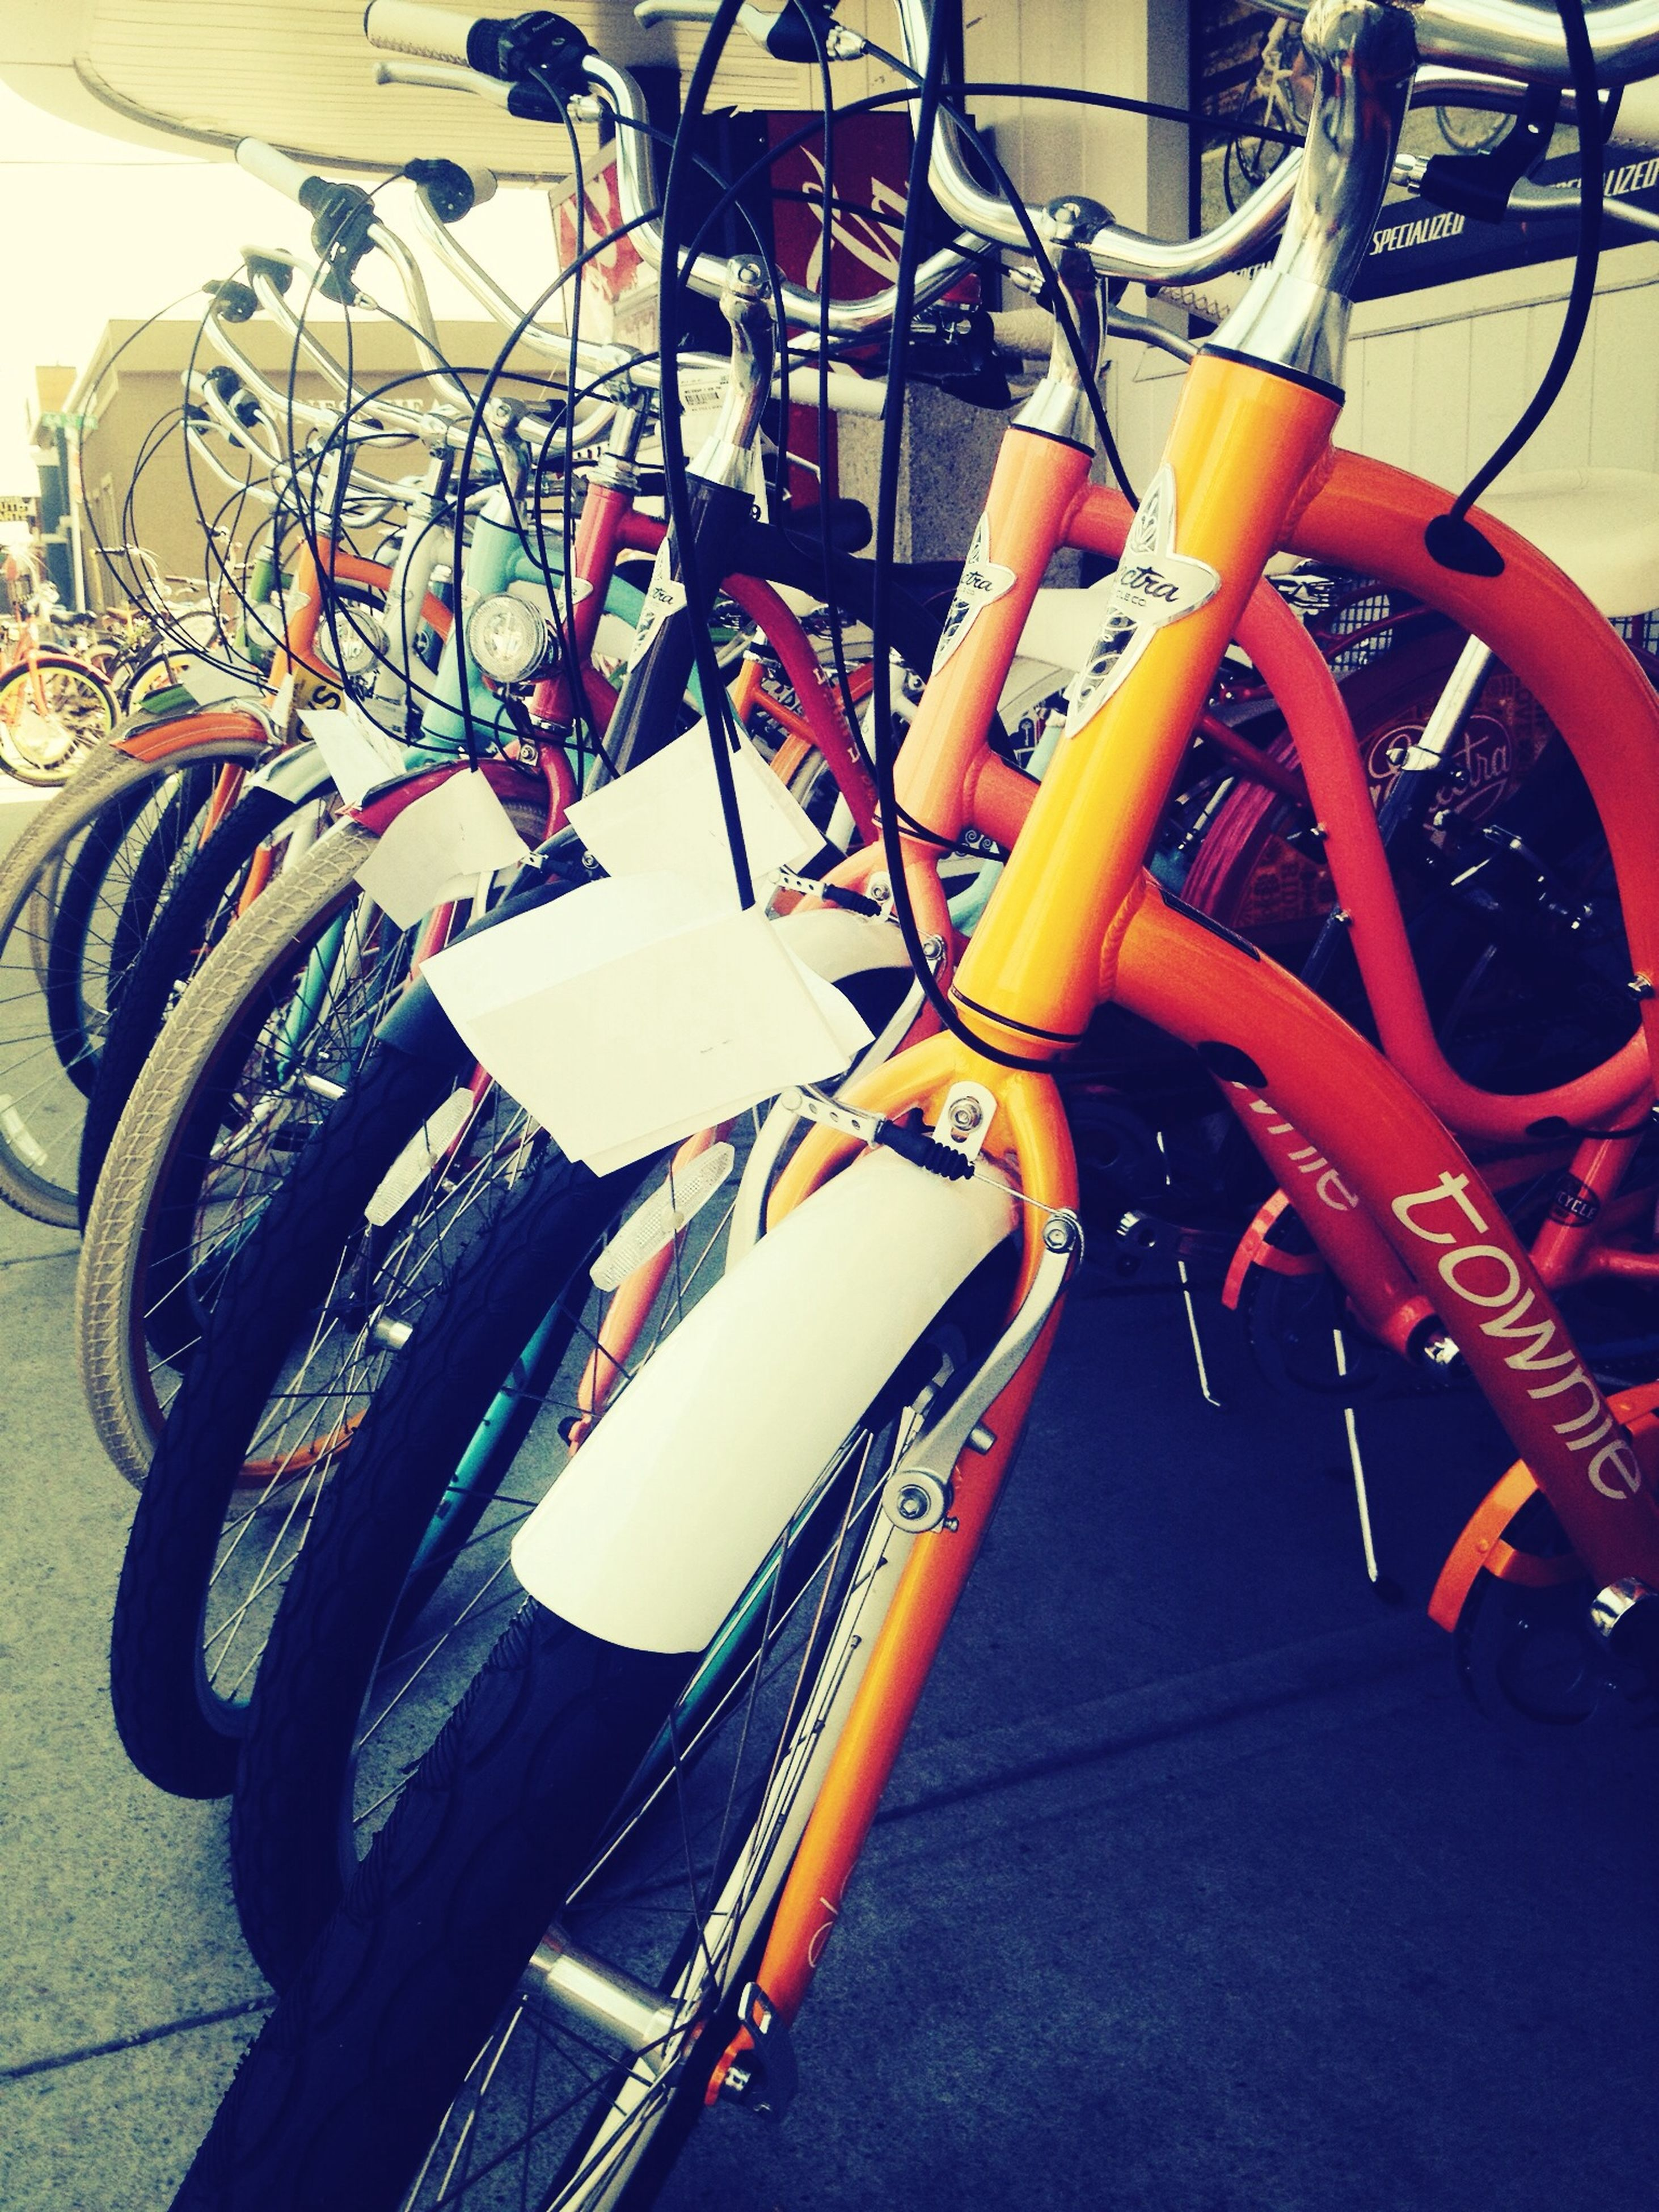 bicycle, metal, no people, land vehicle, close-up, outdoors, day, parking, hanging, transportation, sunlight, low angle view, arts culture and entertainment, decoration, street, stationary, built structure, mode of transport, red, city